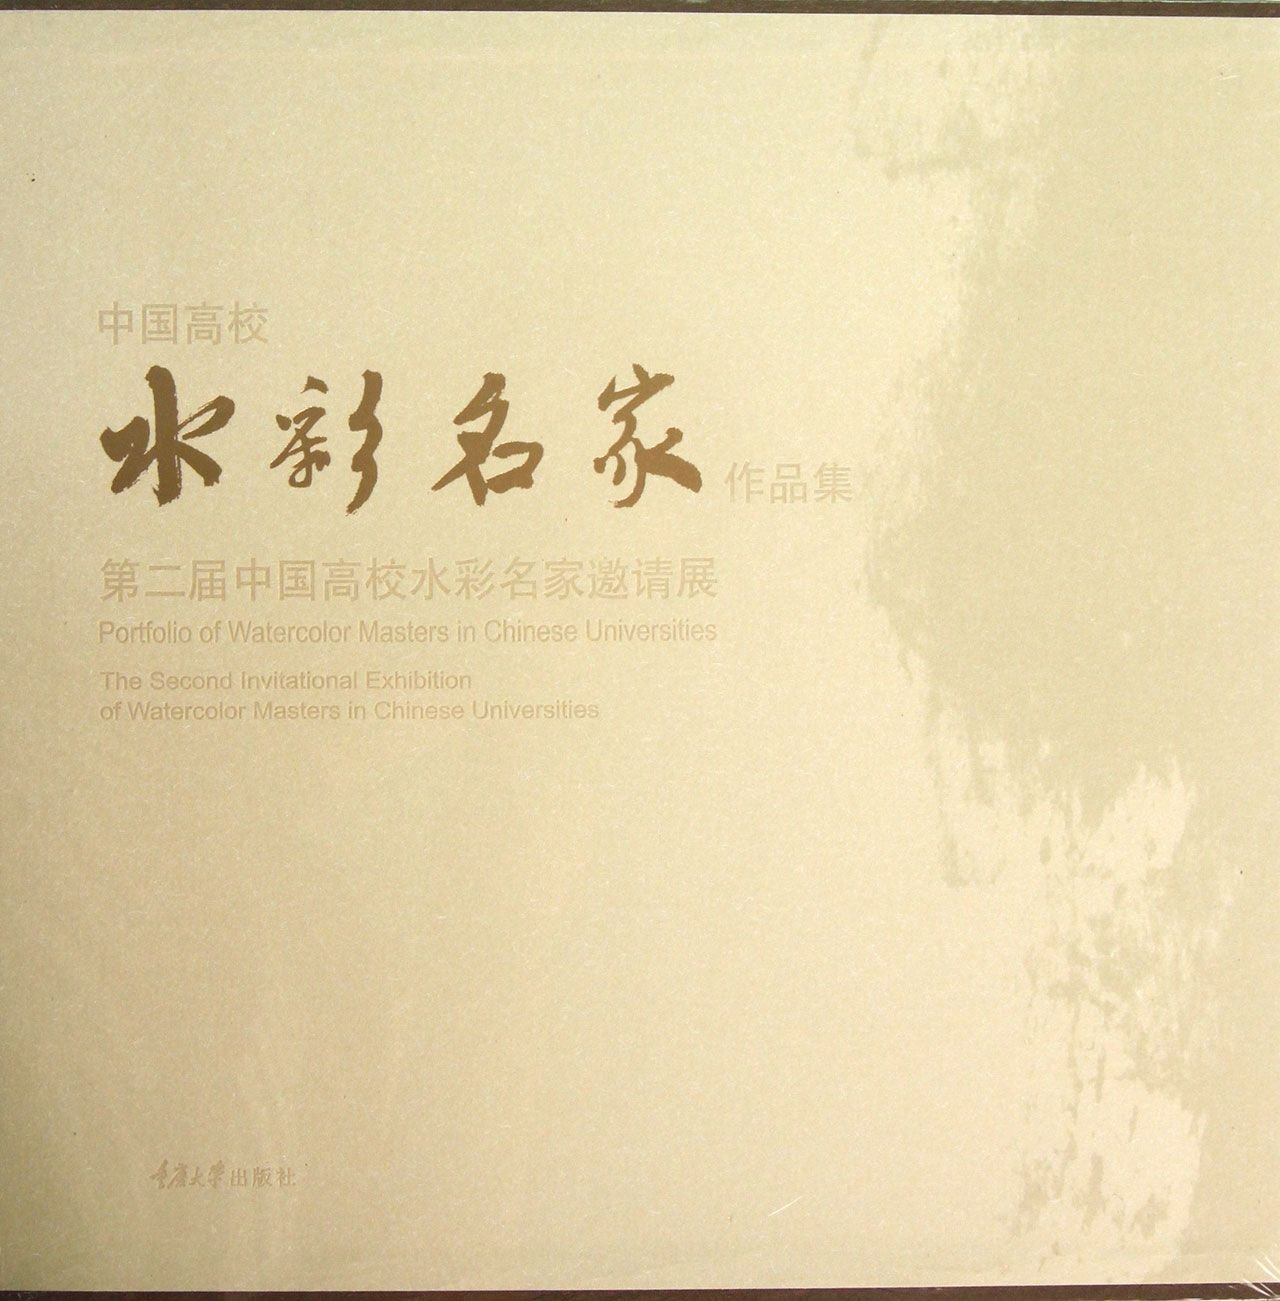 Download Portfolio of Watercolor Masters in Chinese Universities:The Second Invitational Exhibition of Watercolor Masters in Chinese Universities (Chinese Edition) ebook